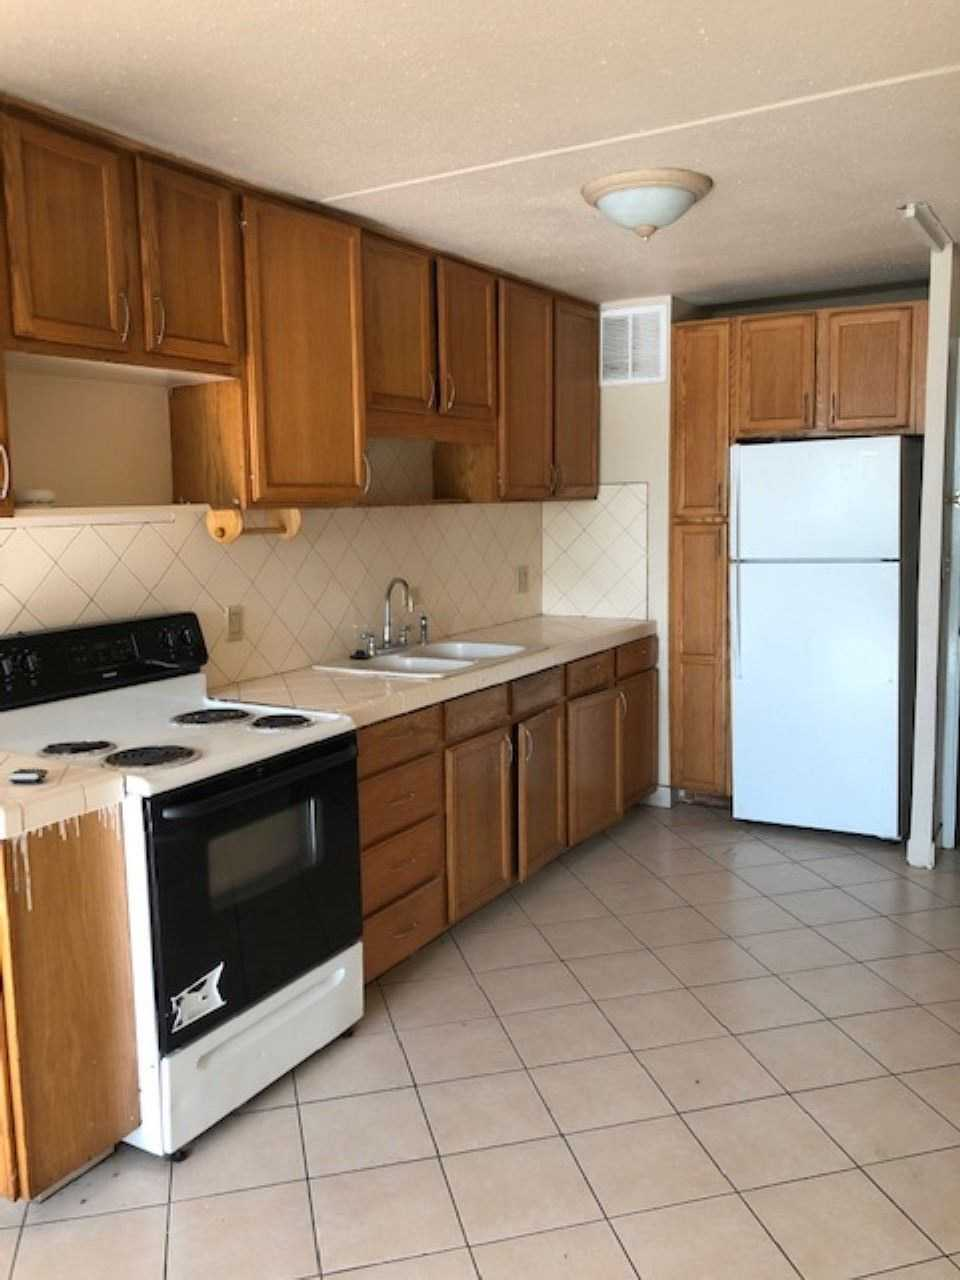 $165,000 - 2Br/2Ba -  for Sale in Harbor Lights, Kahului